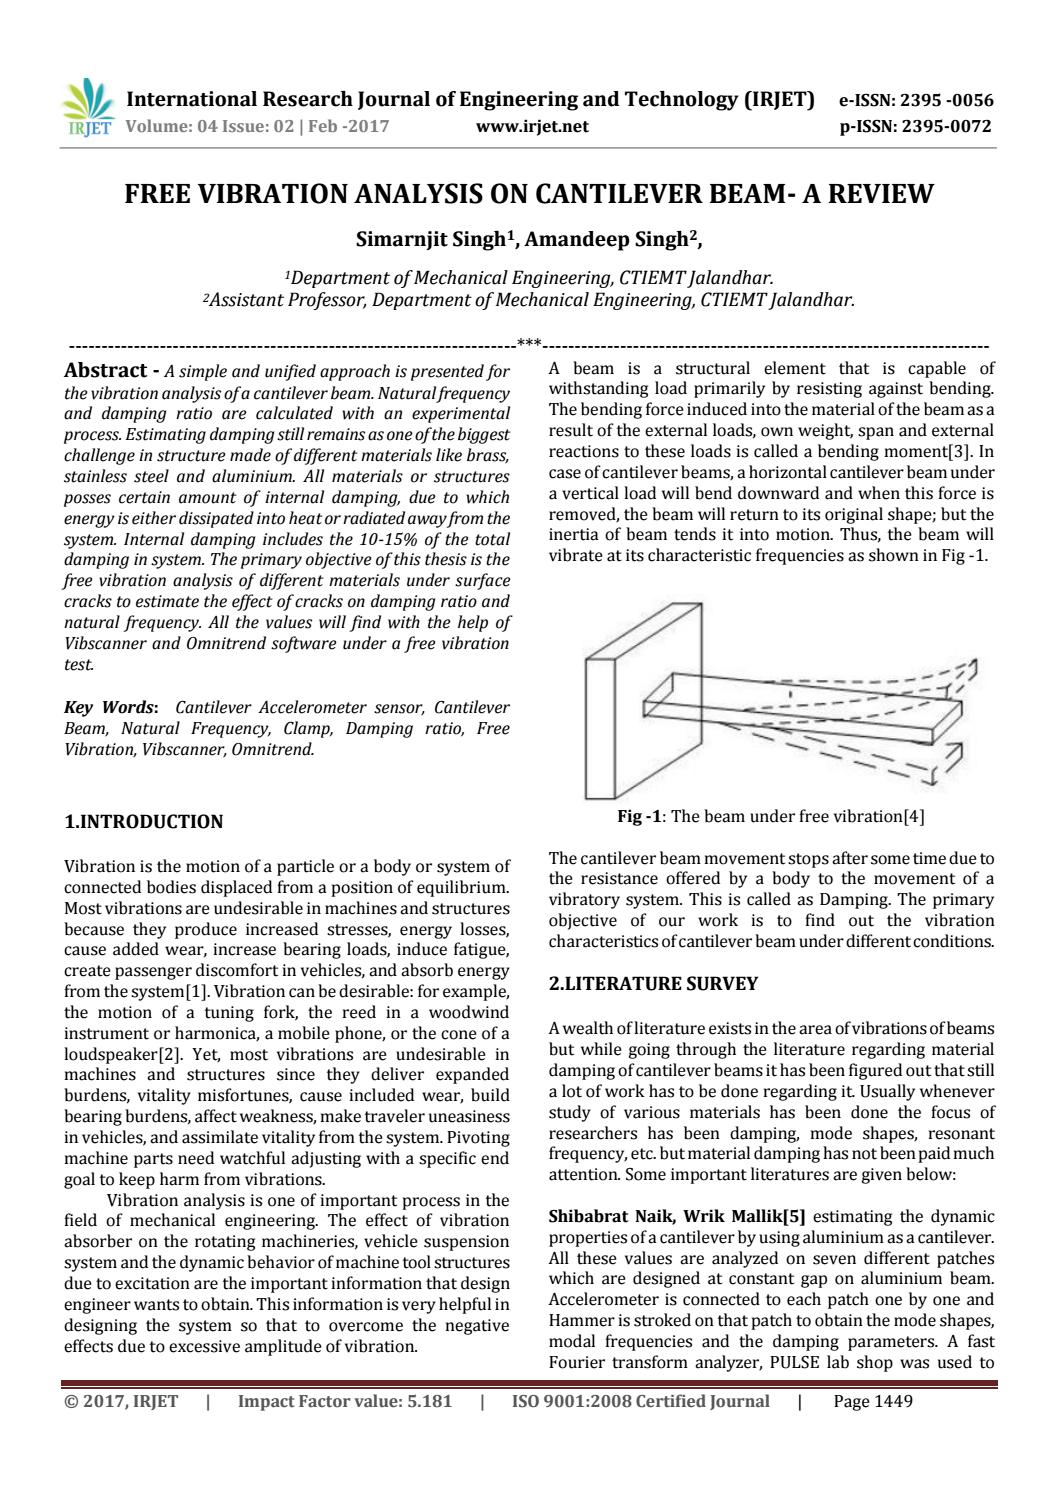 Free vibration analysis on cantilever beam-A review by IRJET Journal